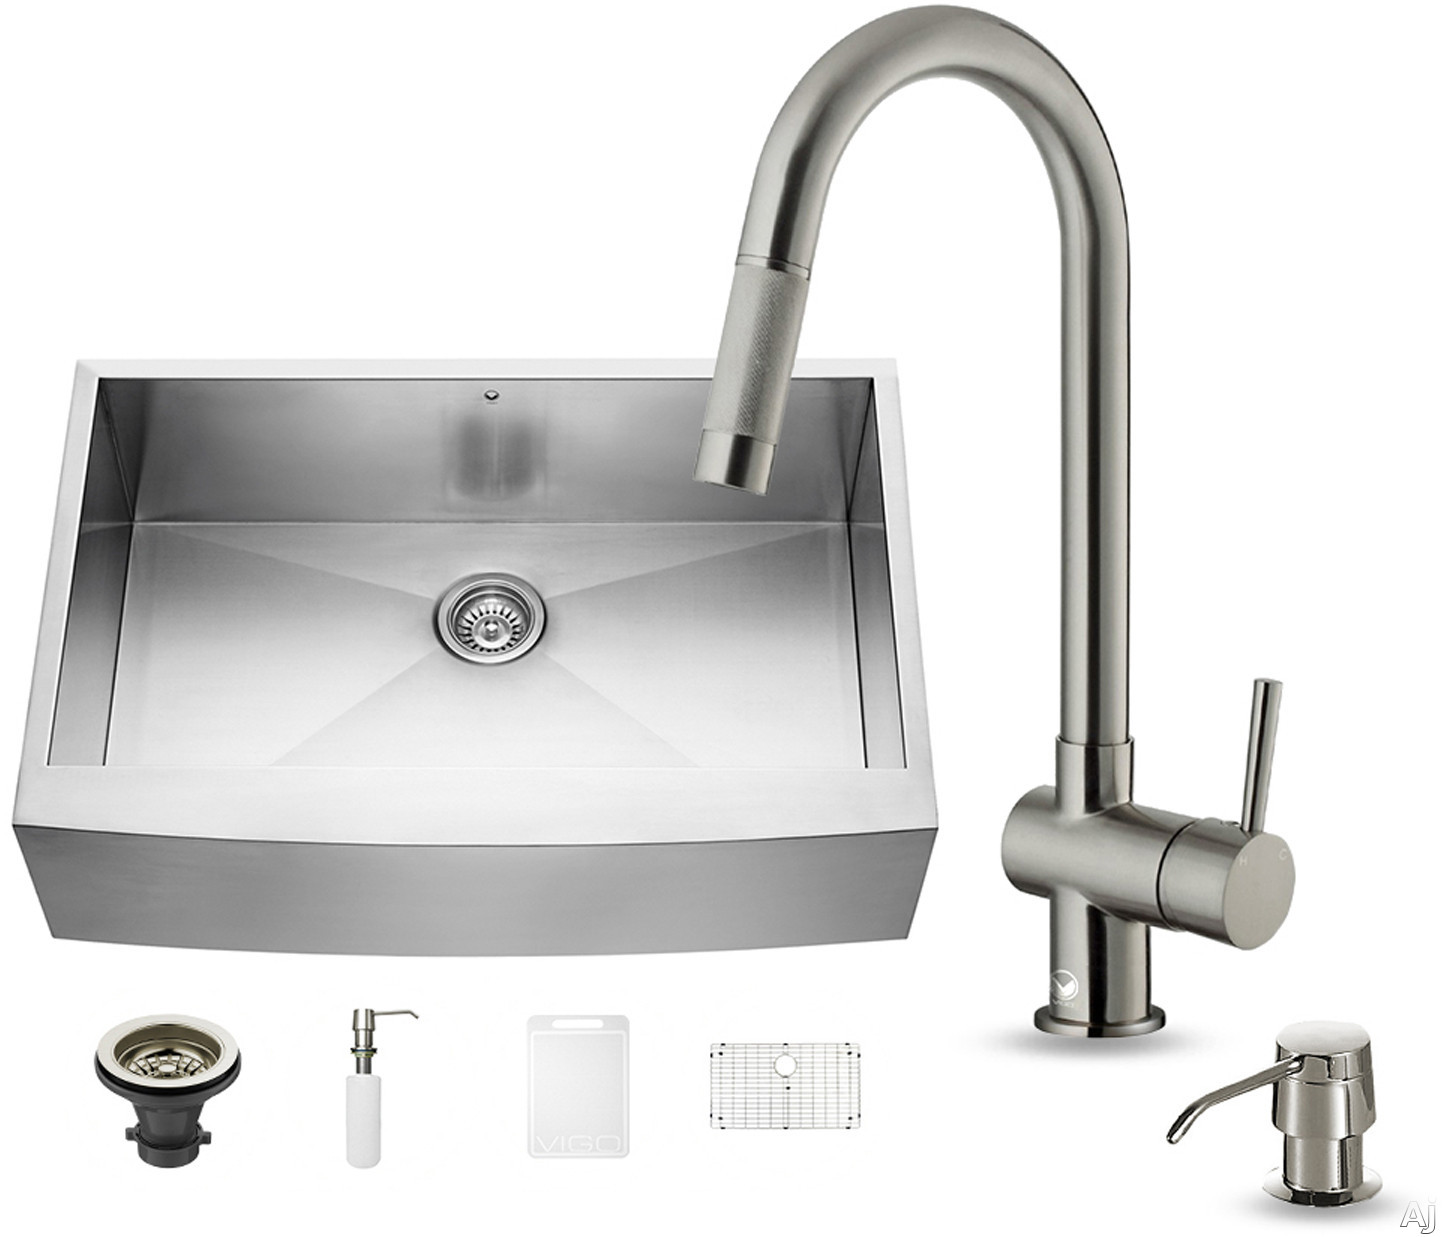 Vigo Industries VG15127 33 Inch Farmhouse Stainless Steel Kitchen Sink with 9 7/8 Inch Bowl Depth, 16-Gauge, Stainless Steel Faucet Set, Bottom Grid, Strainer, Soap Dispenser and ADA Compliant